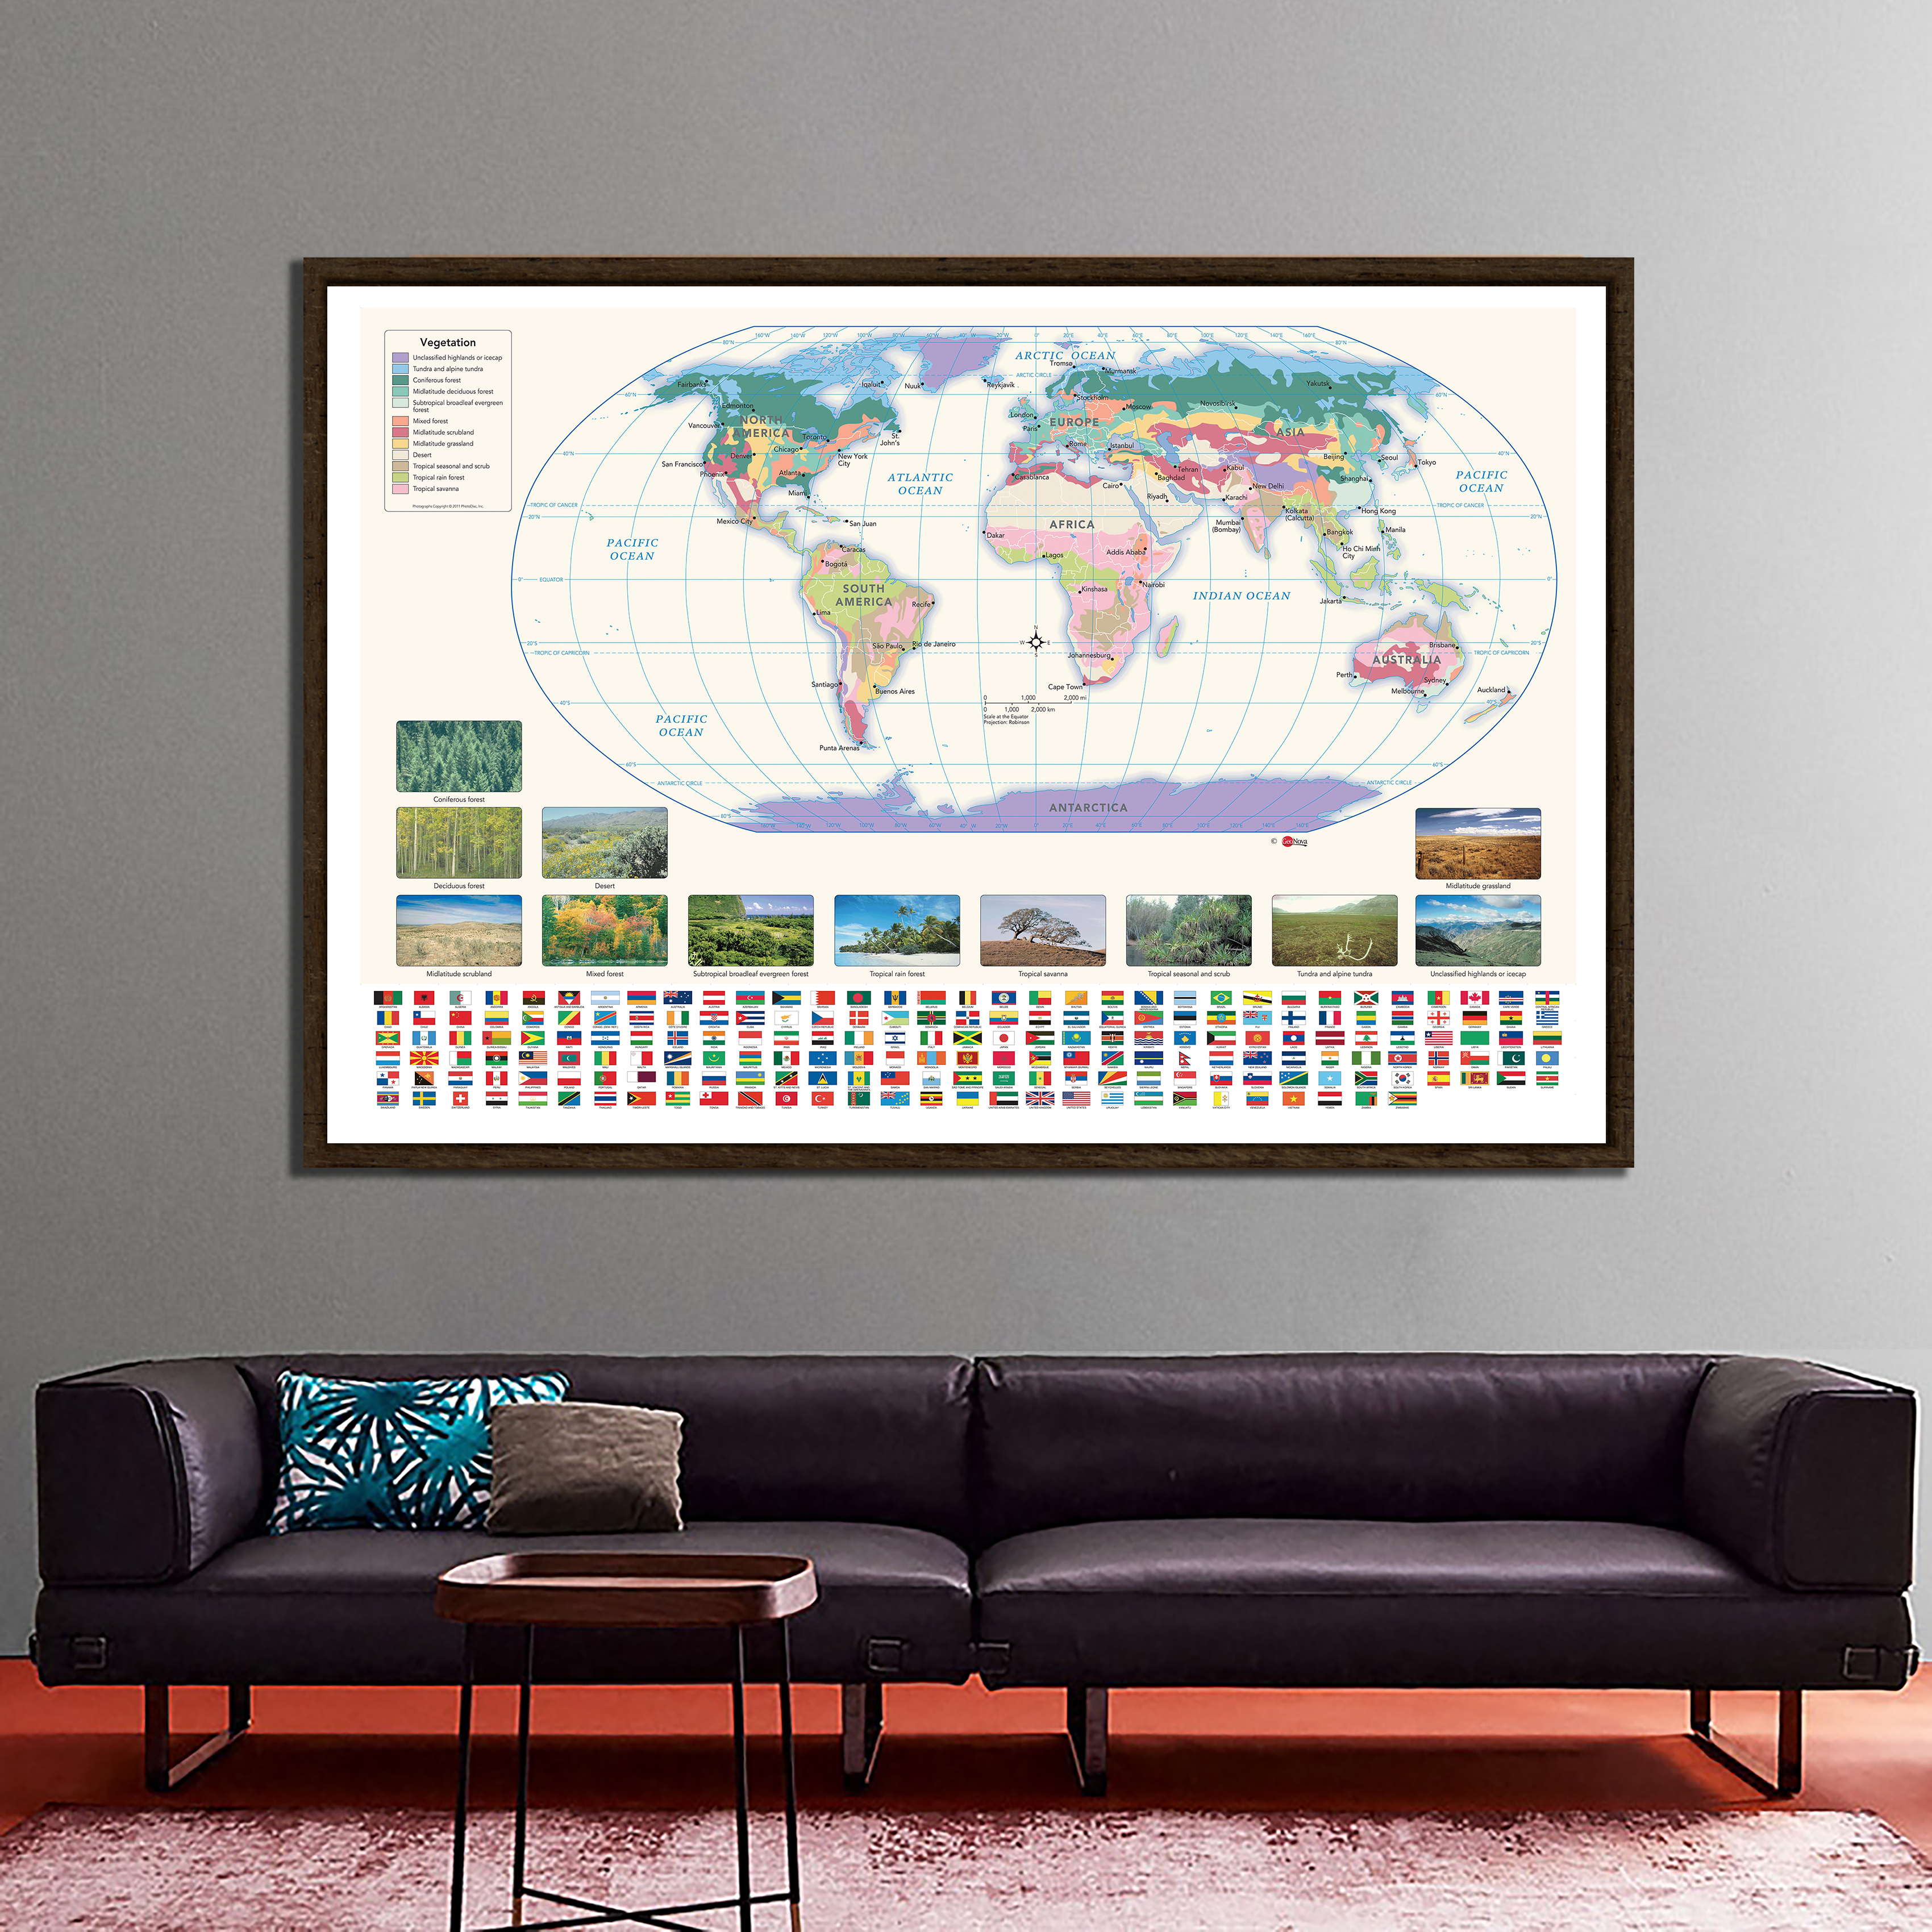 The World Map With Vegetation Map And National Flags 150x225cm Non-woven Waterproof World Map